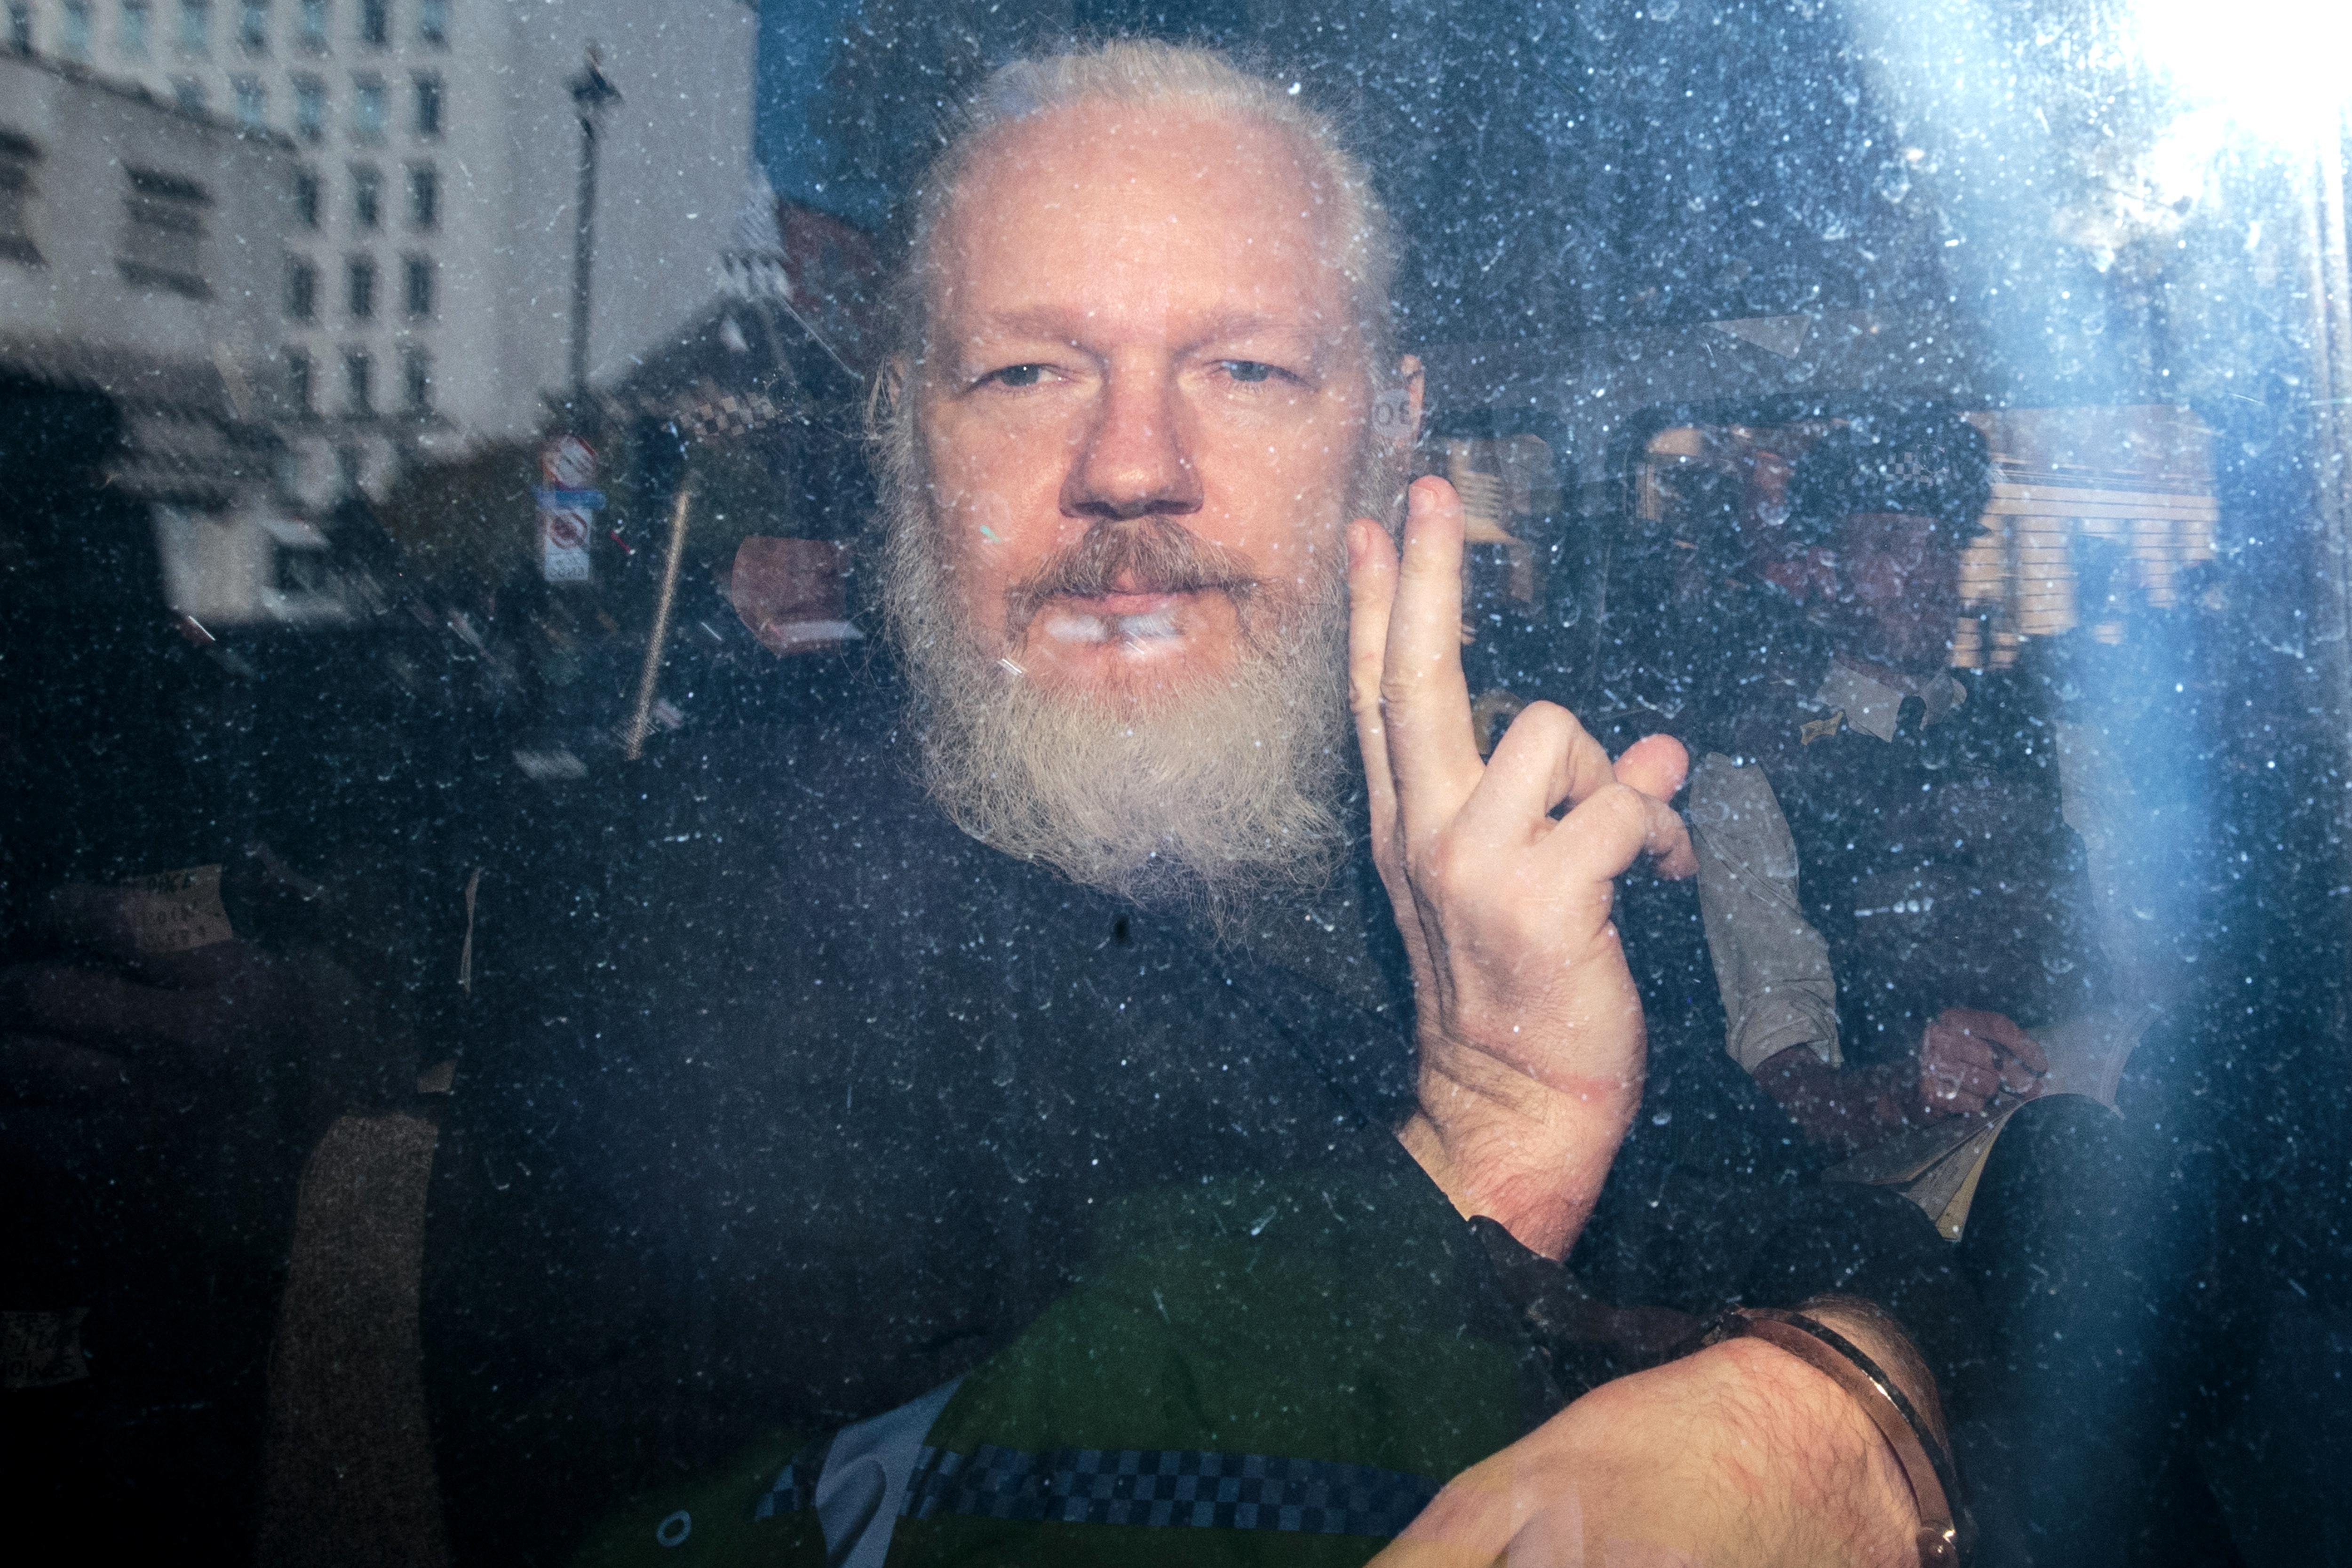 Julian Assange gestures to the media from inside a police vehicle.